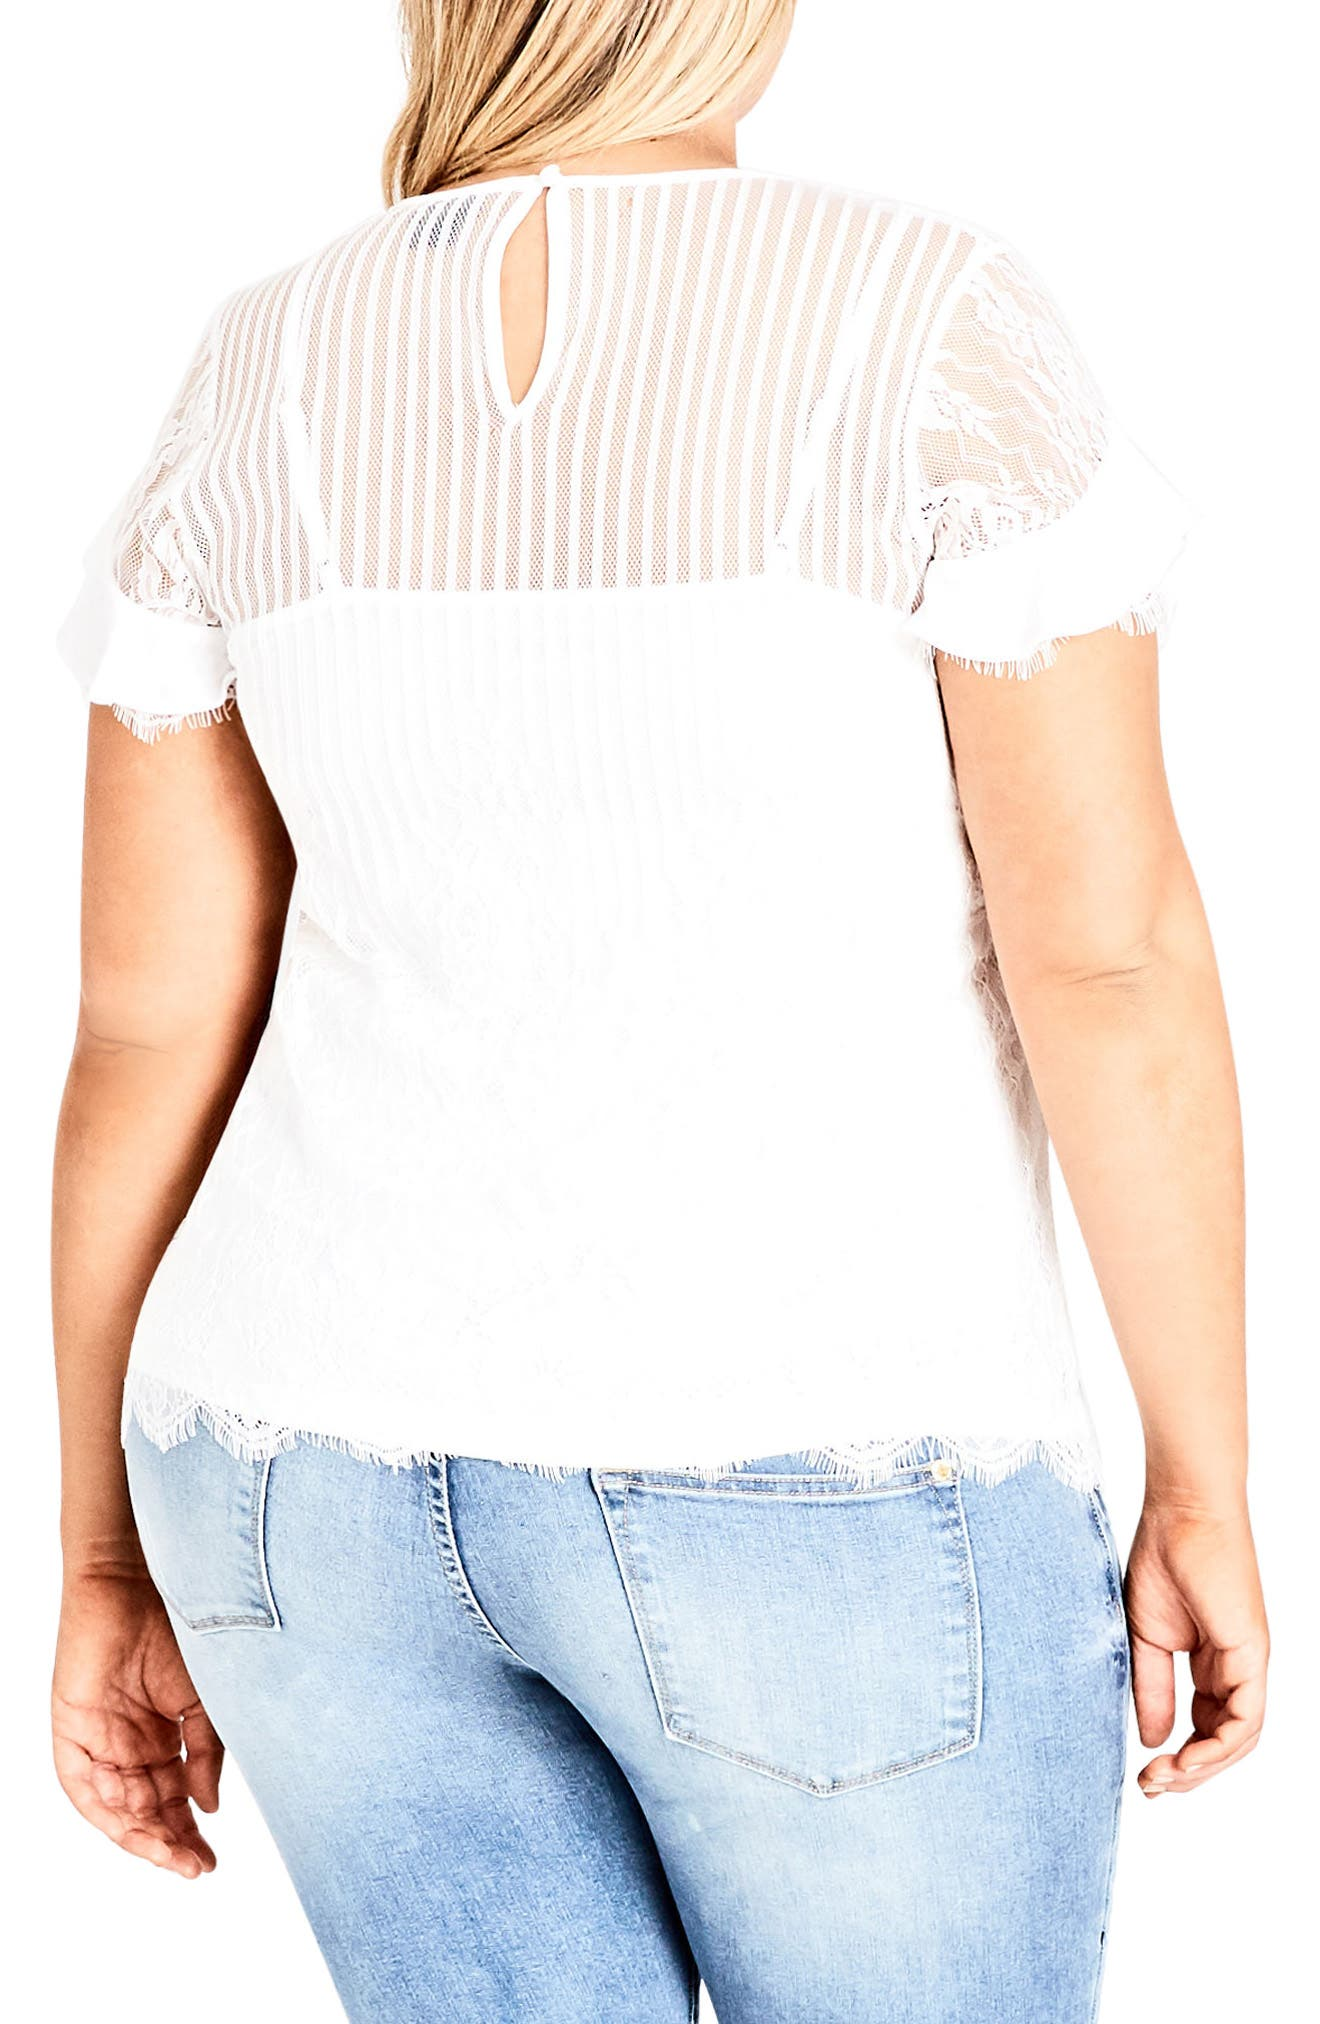 CITY CHIC, Ruffle Stripe Lace Top, Alternate thumbnail 2, color, IVORY